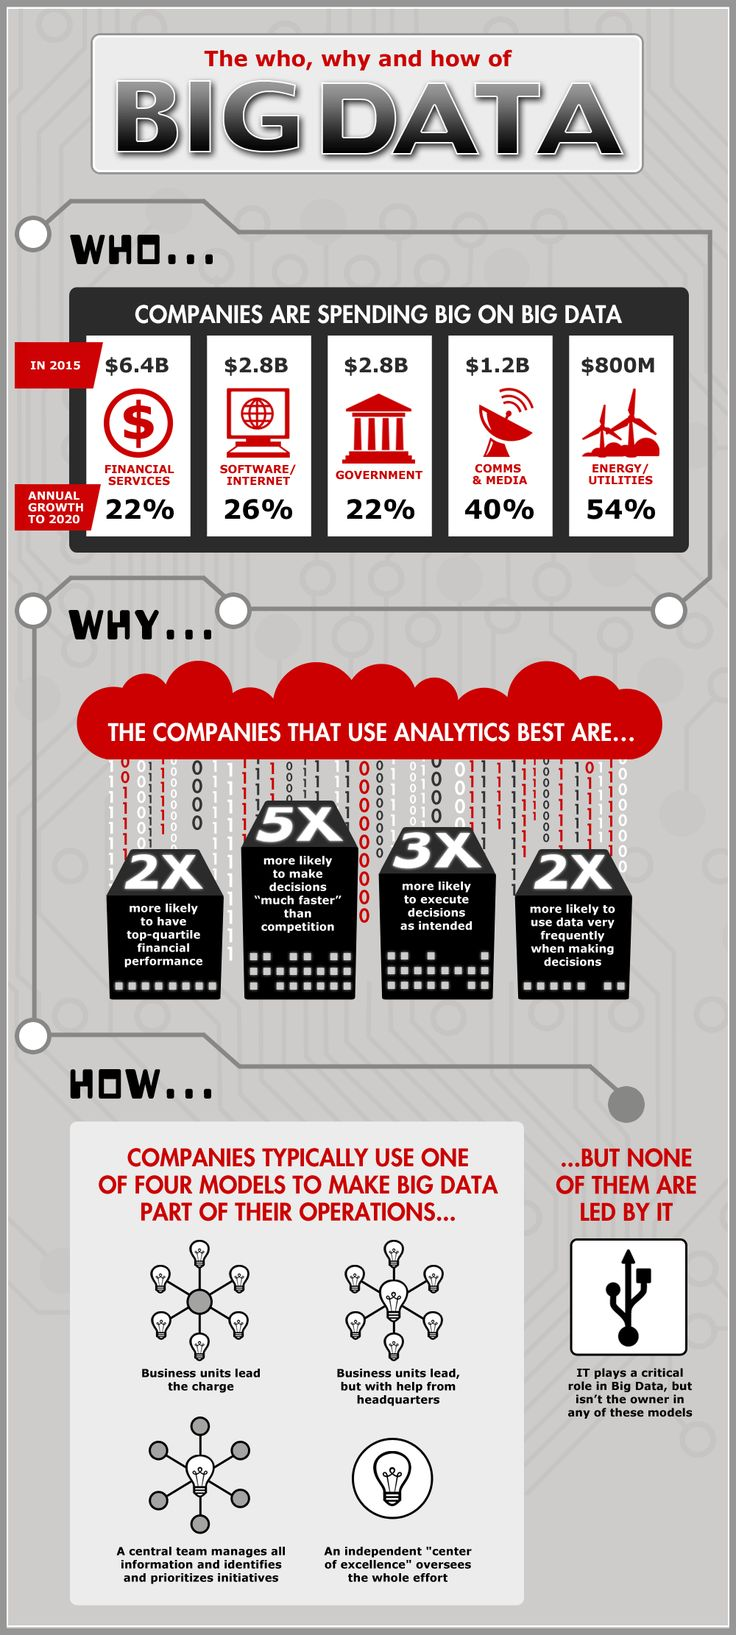 The Who, Why, and How of Big Data [INFOGRAPHIC]